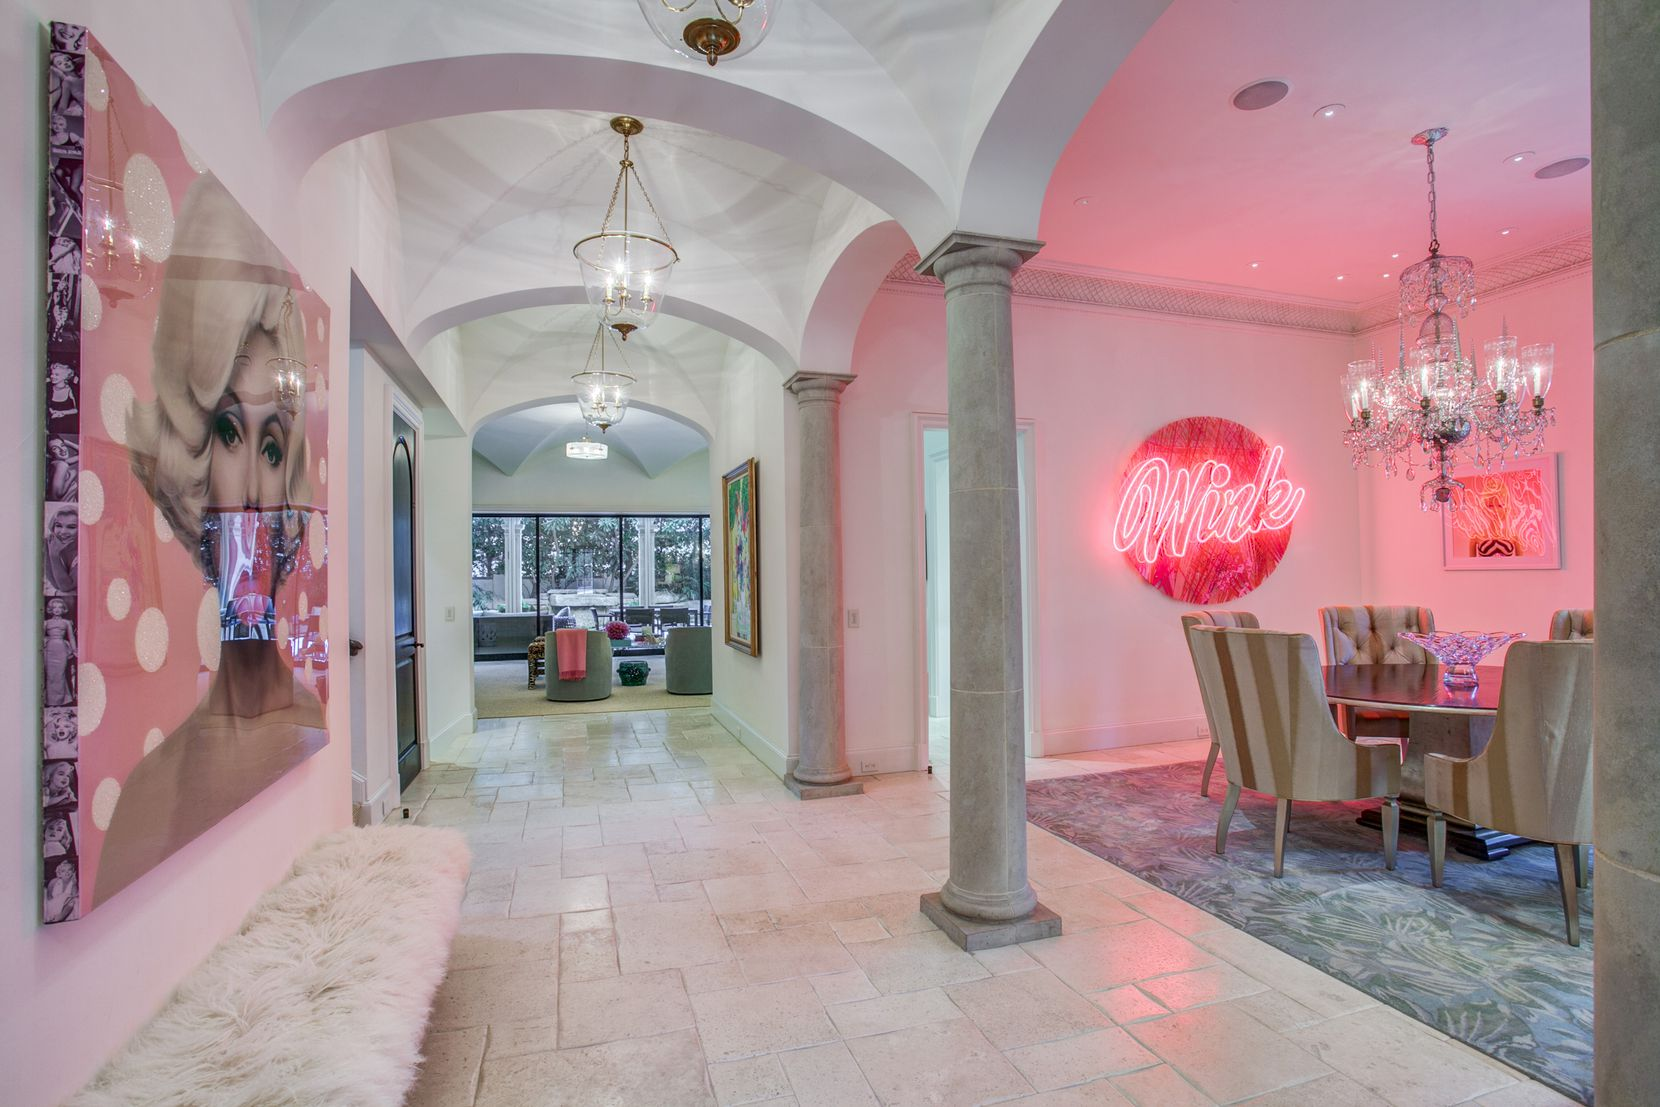 A look at a hallway of the one-time Dallas home Kameron Westcott.